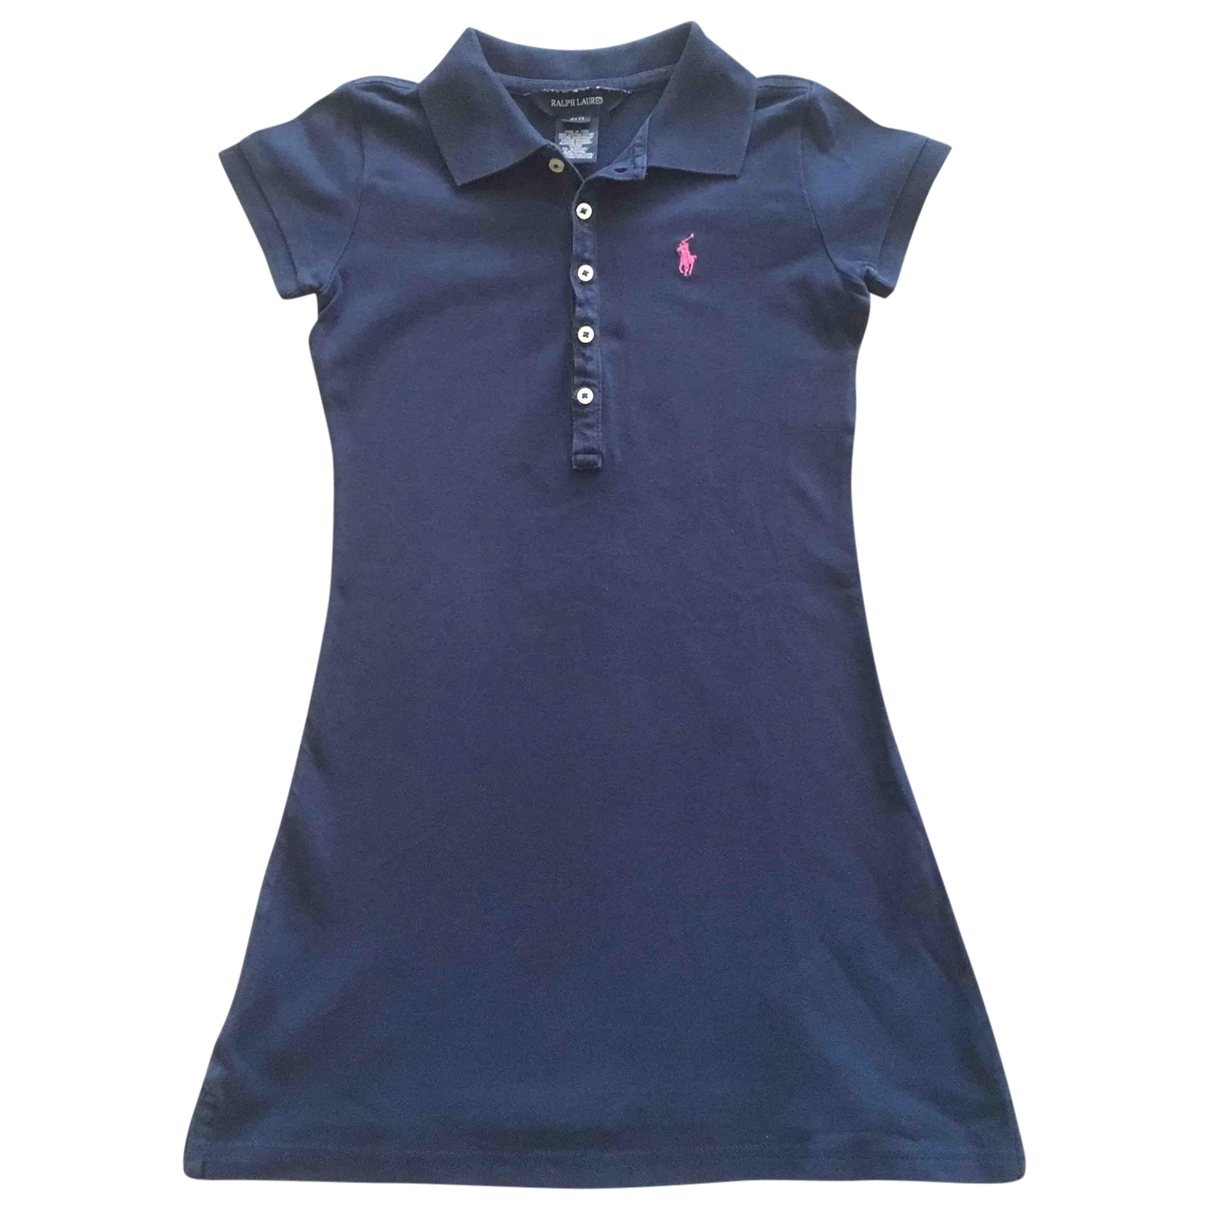 Polo Ralph Lauren \N Blue Cotton dress for Kids 6 years - until 45 inches UK